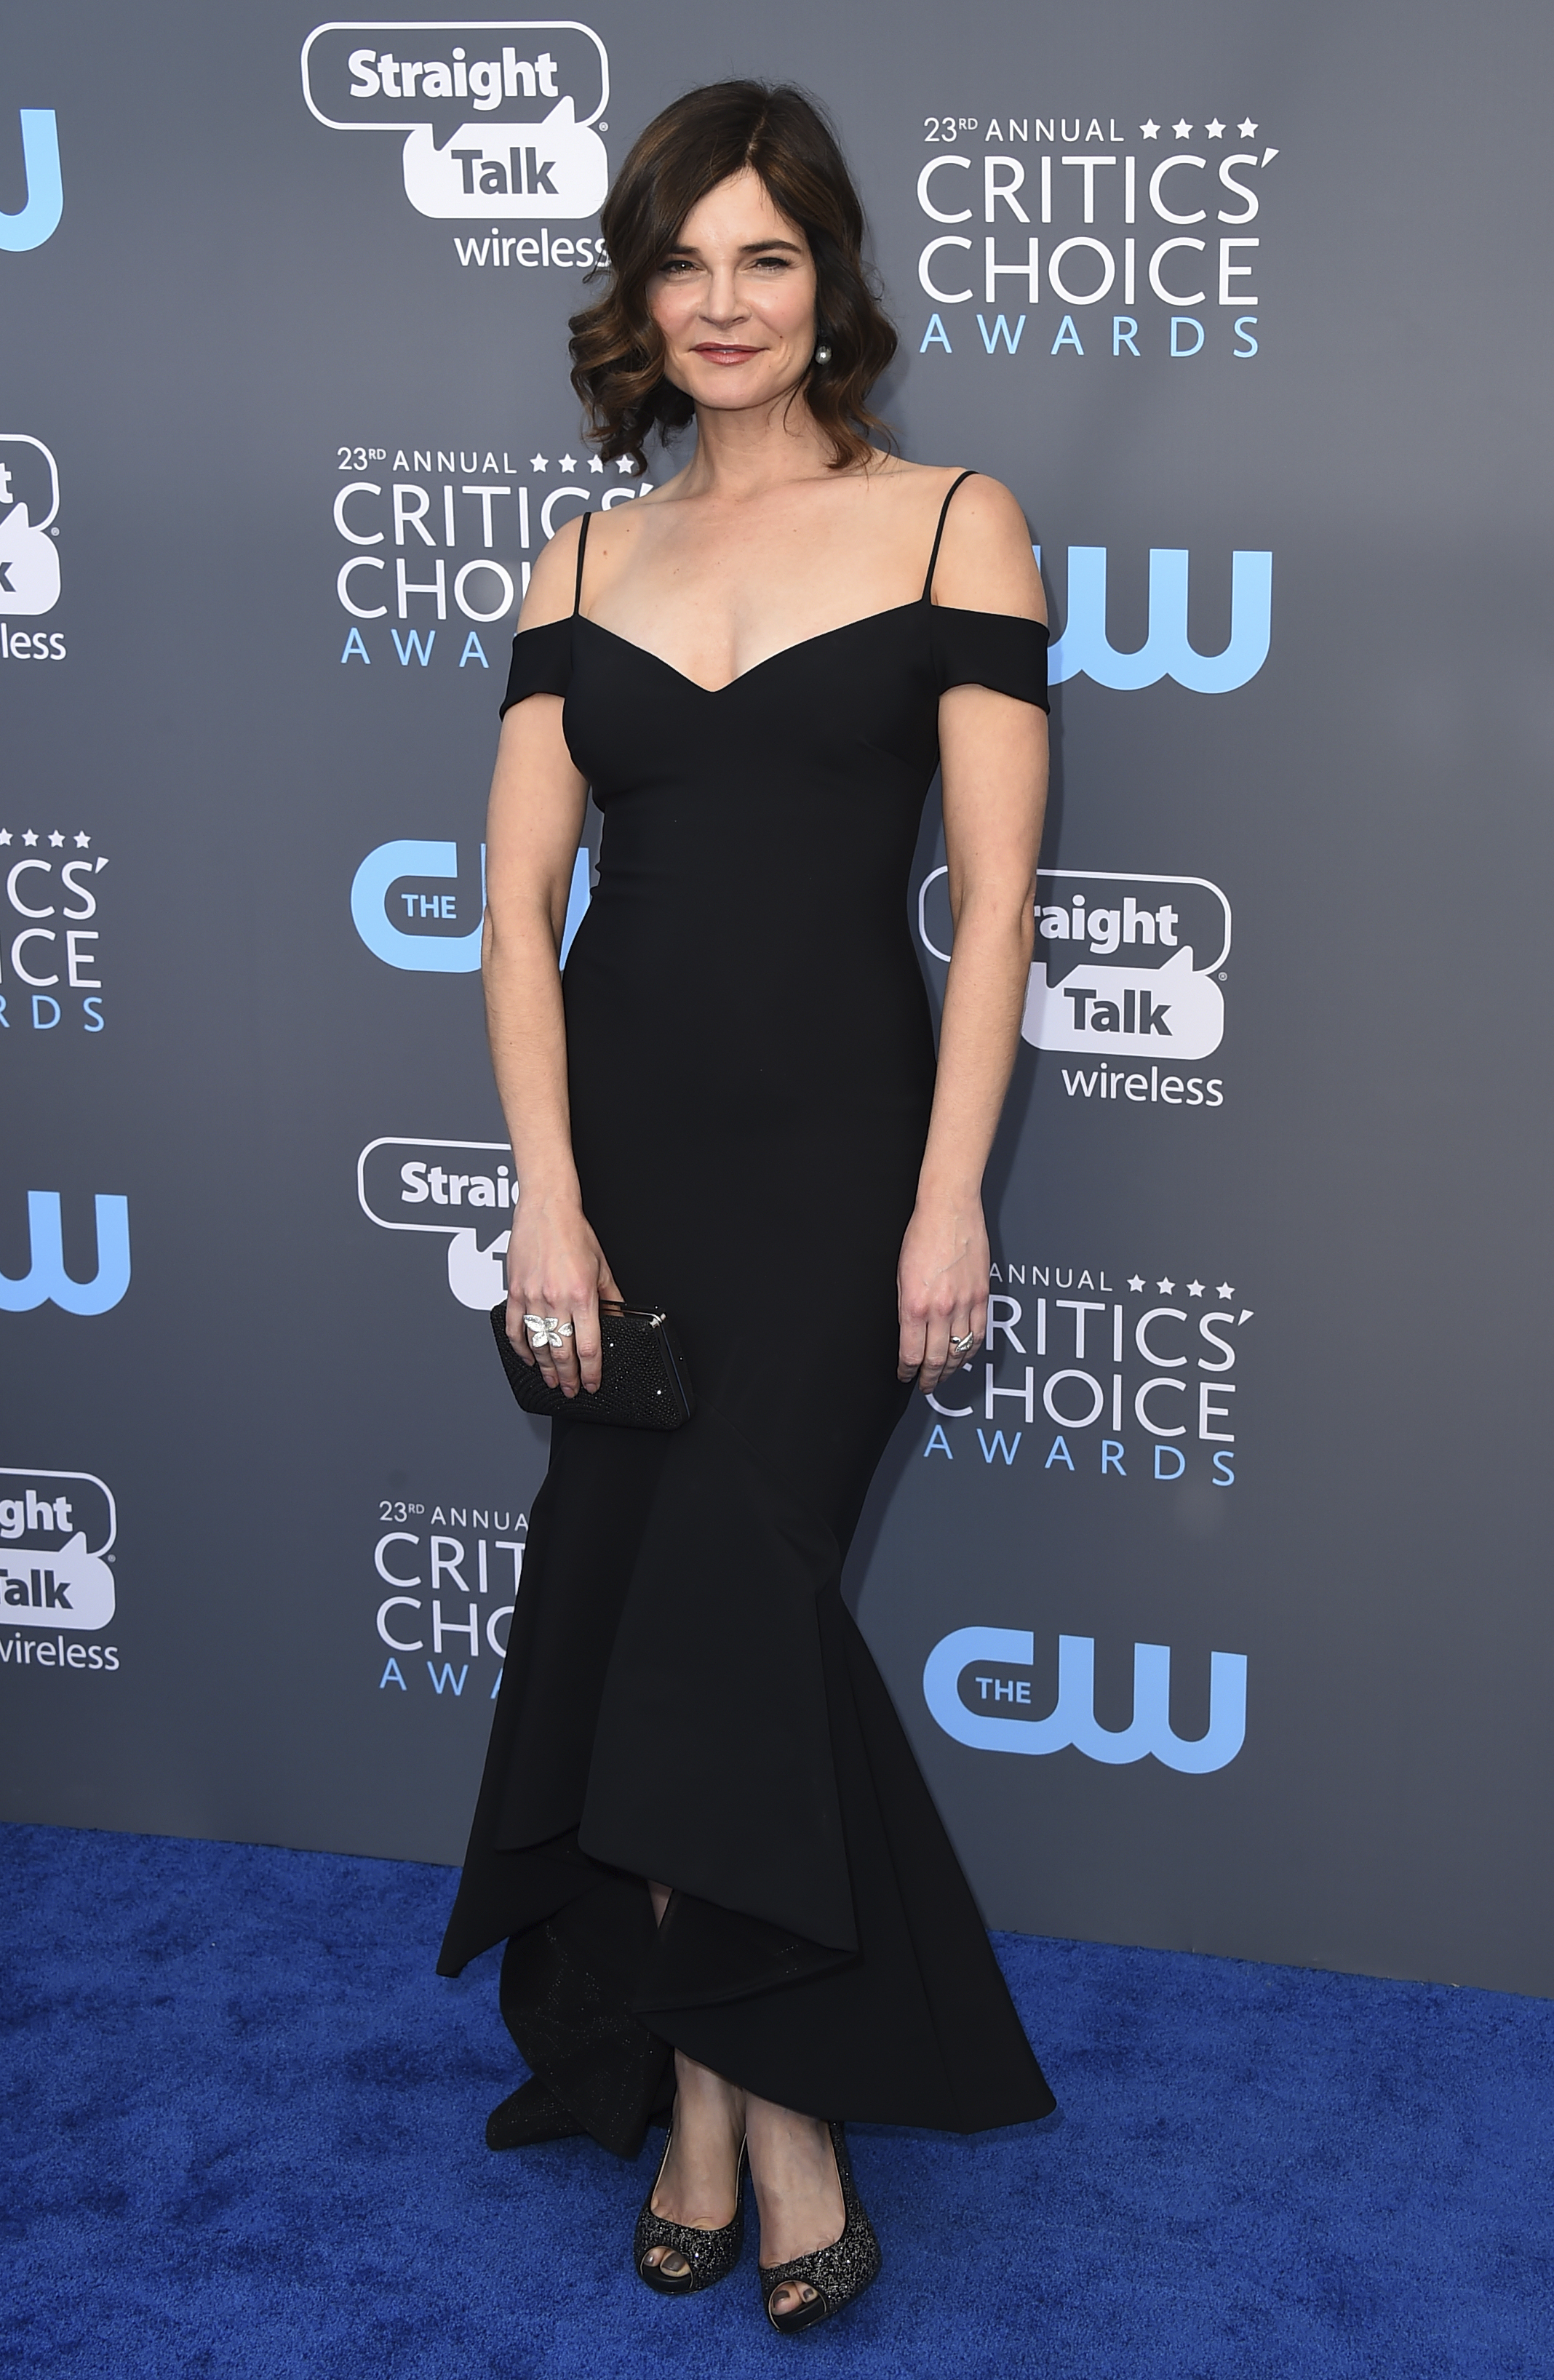 <div class='meta'><div class='origin-logo' data-origin='AP'></div><span class='caption-text' data-credit='Jordan Strauss/Invision/AP'>Betsy Brandt arrives at the 23rd annual Critics' Choice Awards at the Barker Hangar on Thursday, Jan. 11, 2018, in Santa Monica, Calif.</span></div>